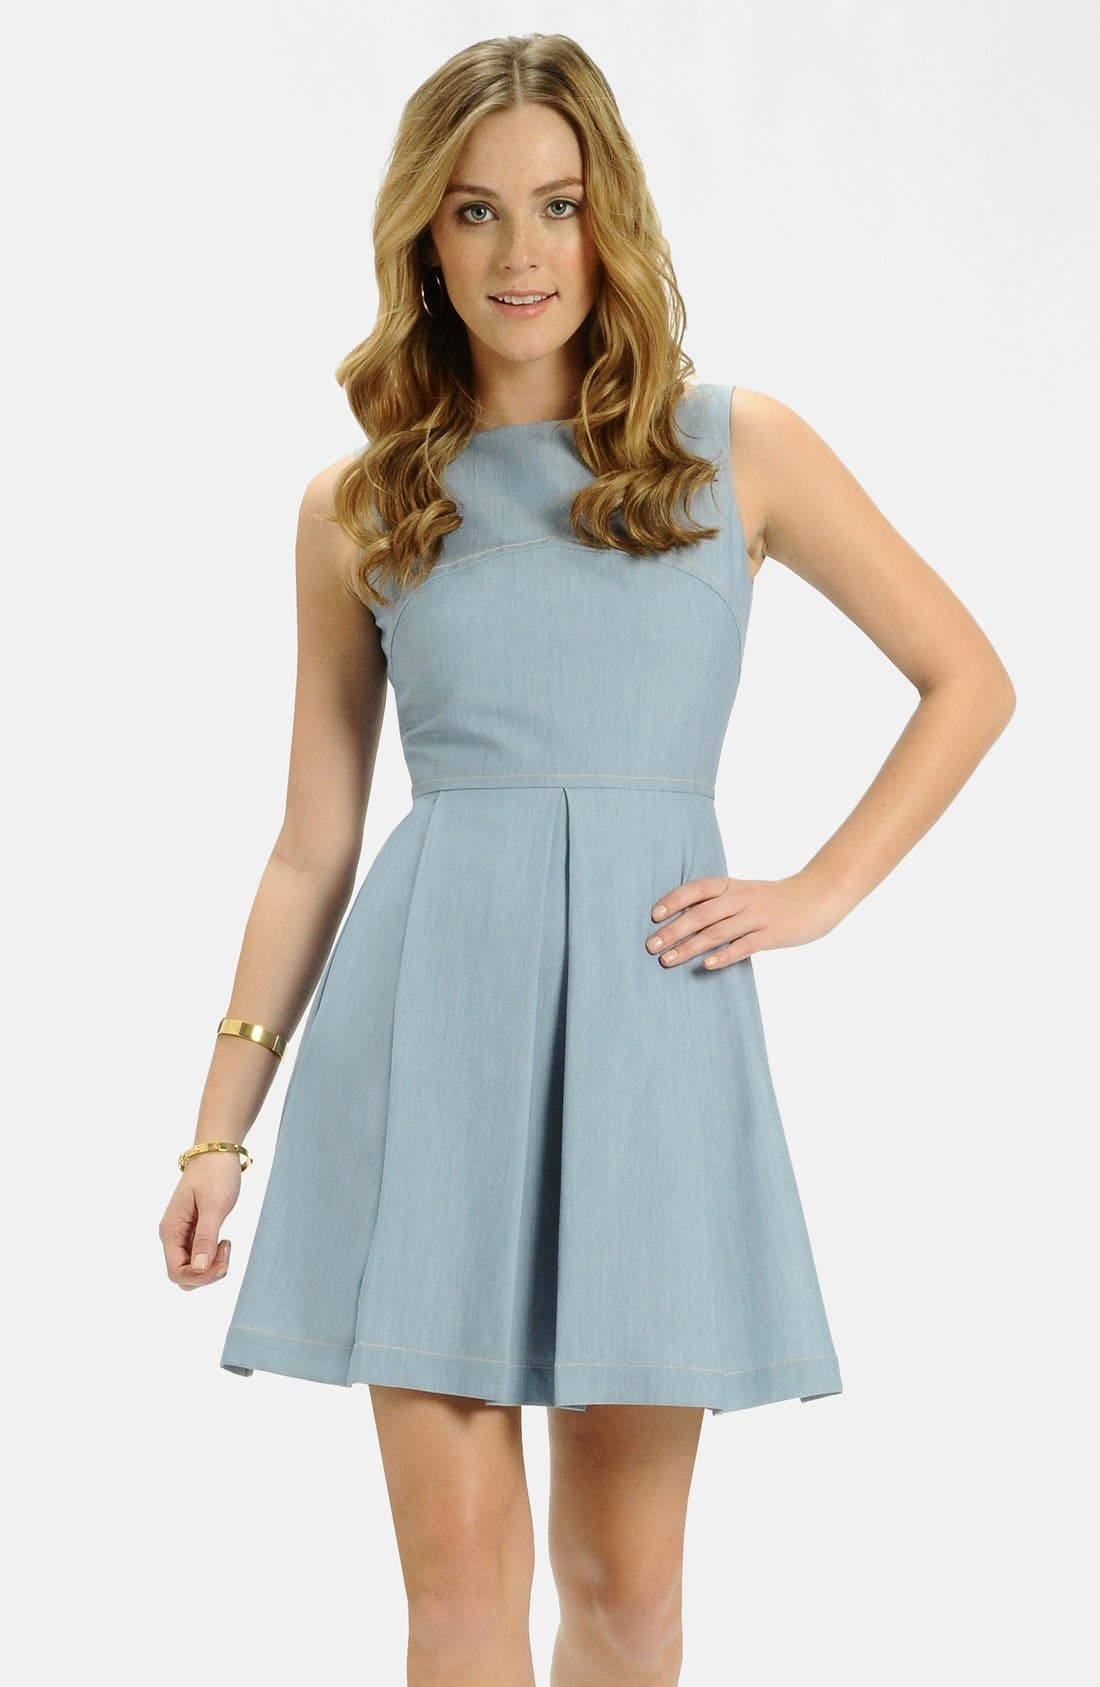 Alternate Image 1 Selected - LABEL by five twelve Chambray Fit & Flare Dress